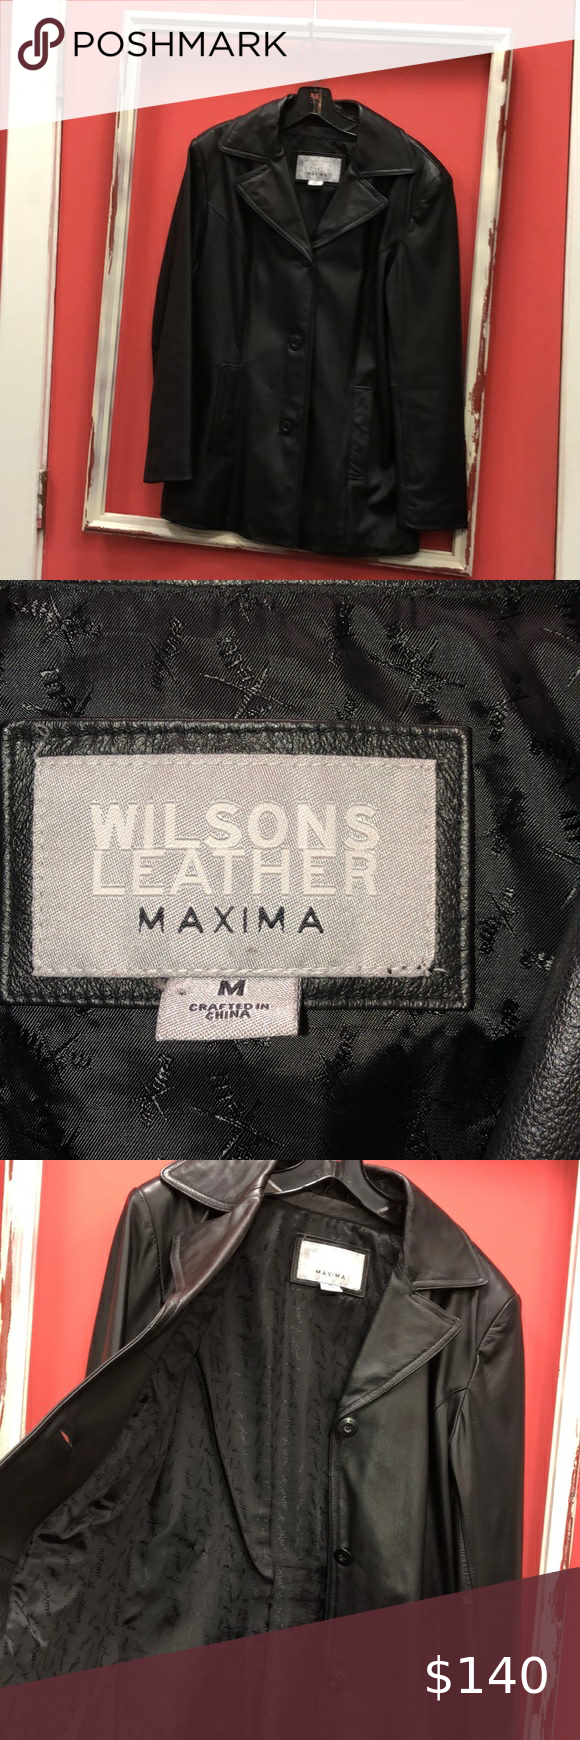 Wilson's Leather Jacket in 2020 Leather jacket, Wilsons